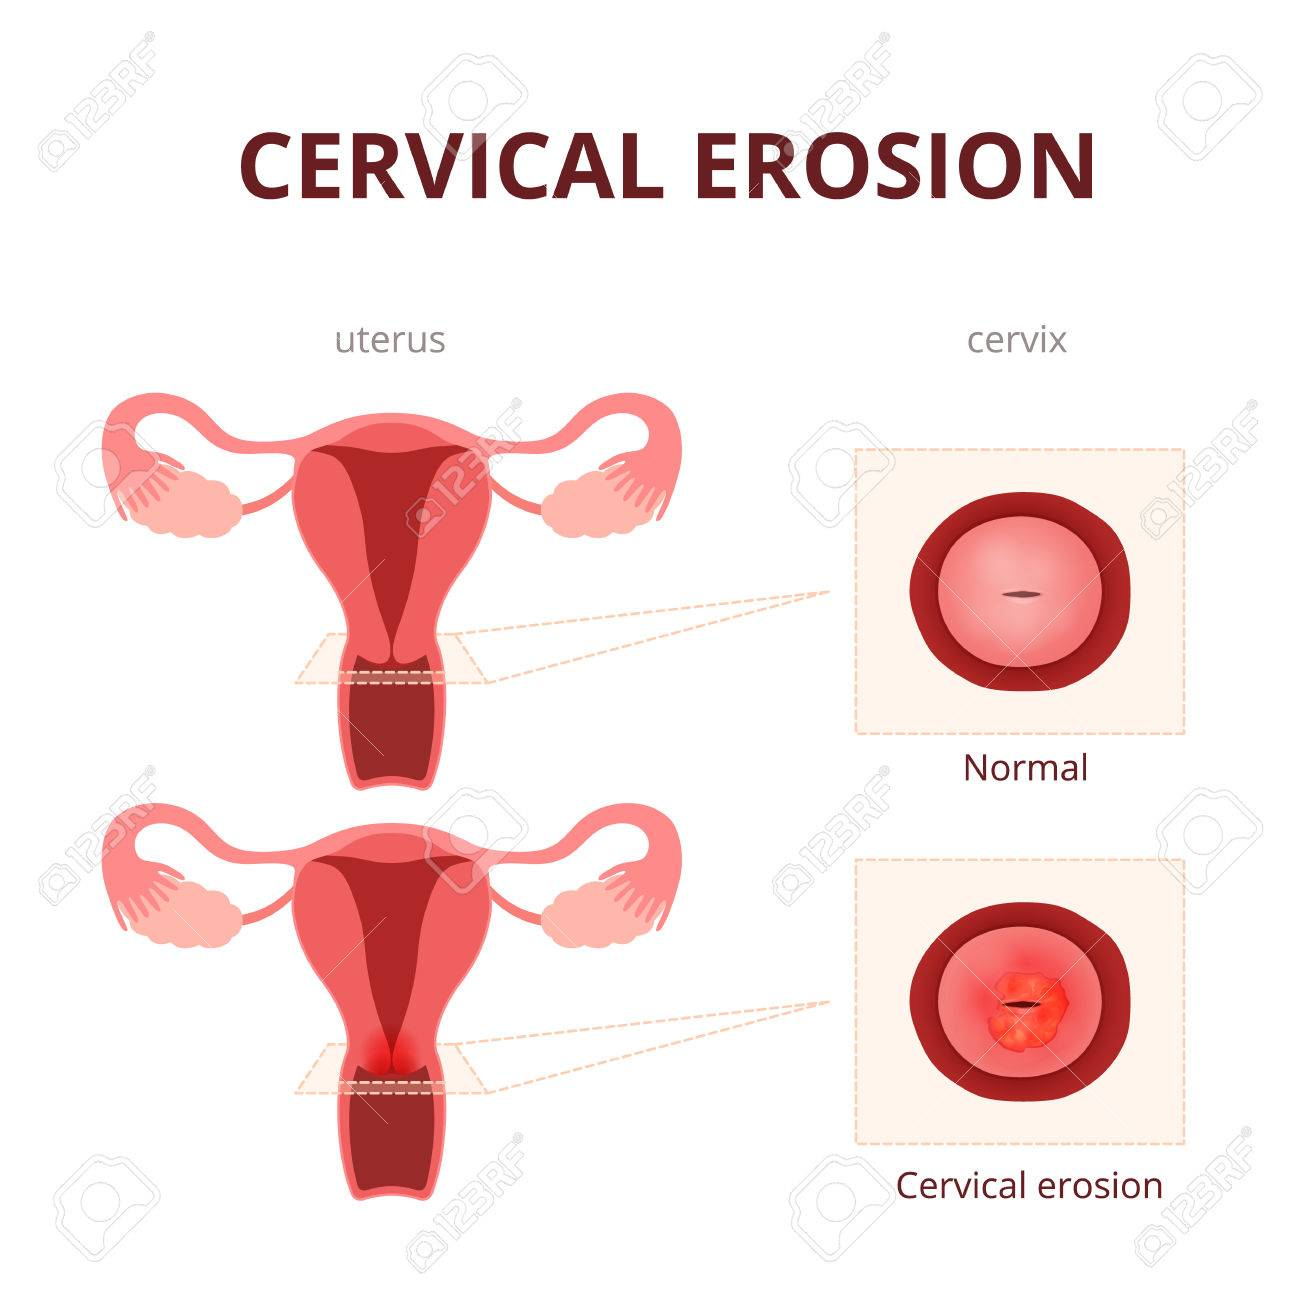 schematic illustration of the uterus and the cervix, female reproductive system diseases - 57878168